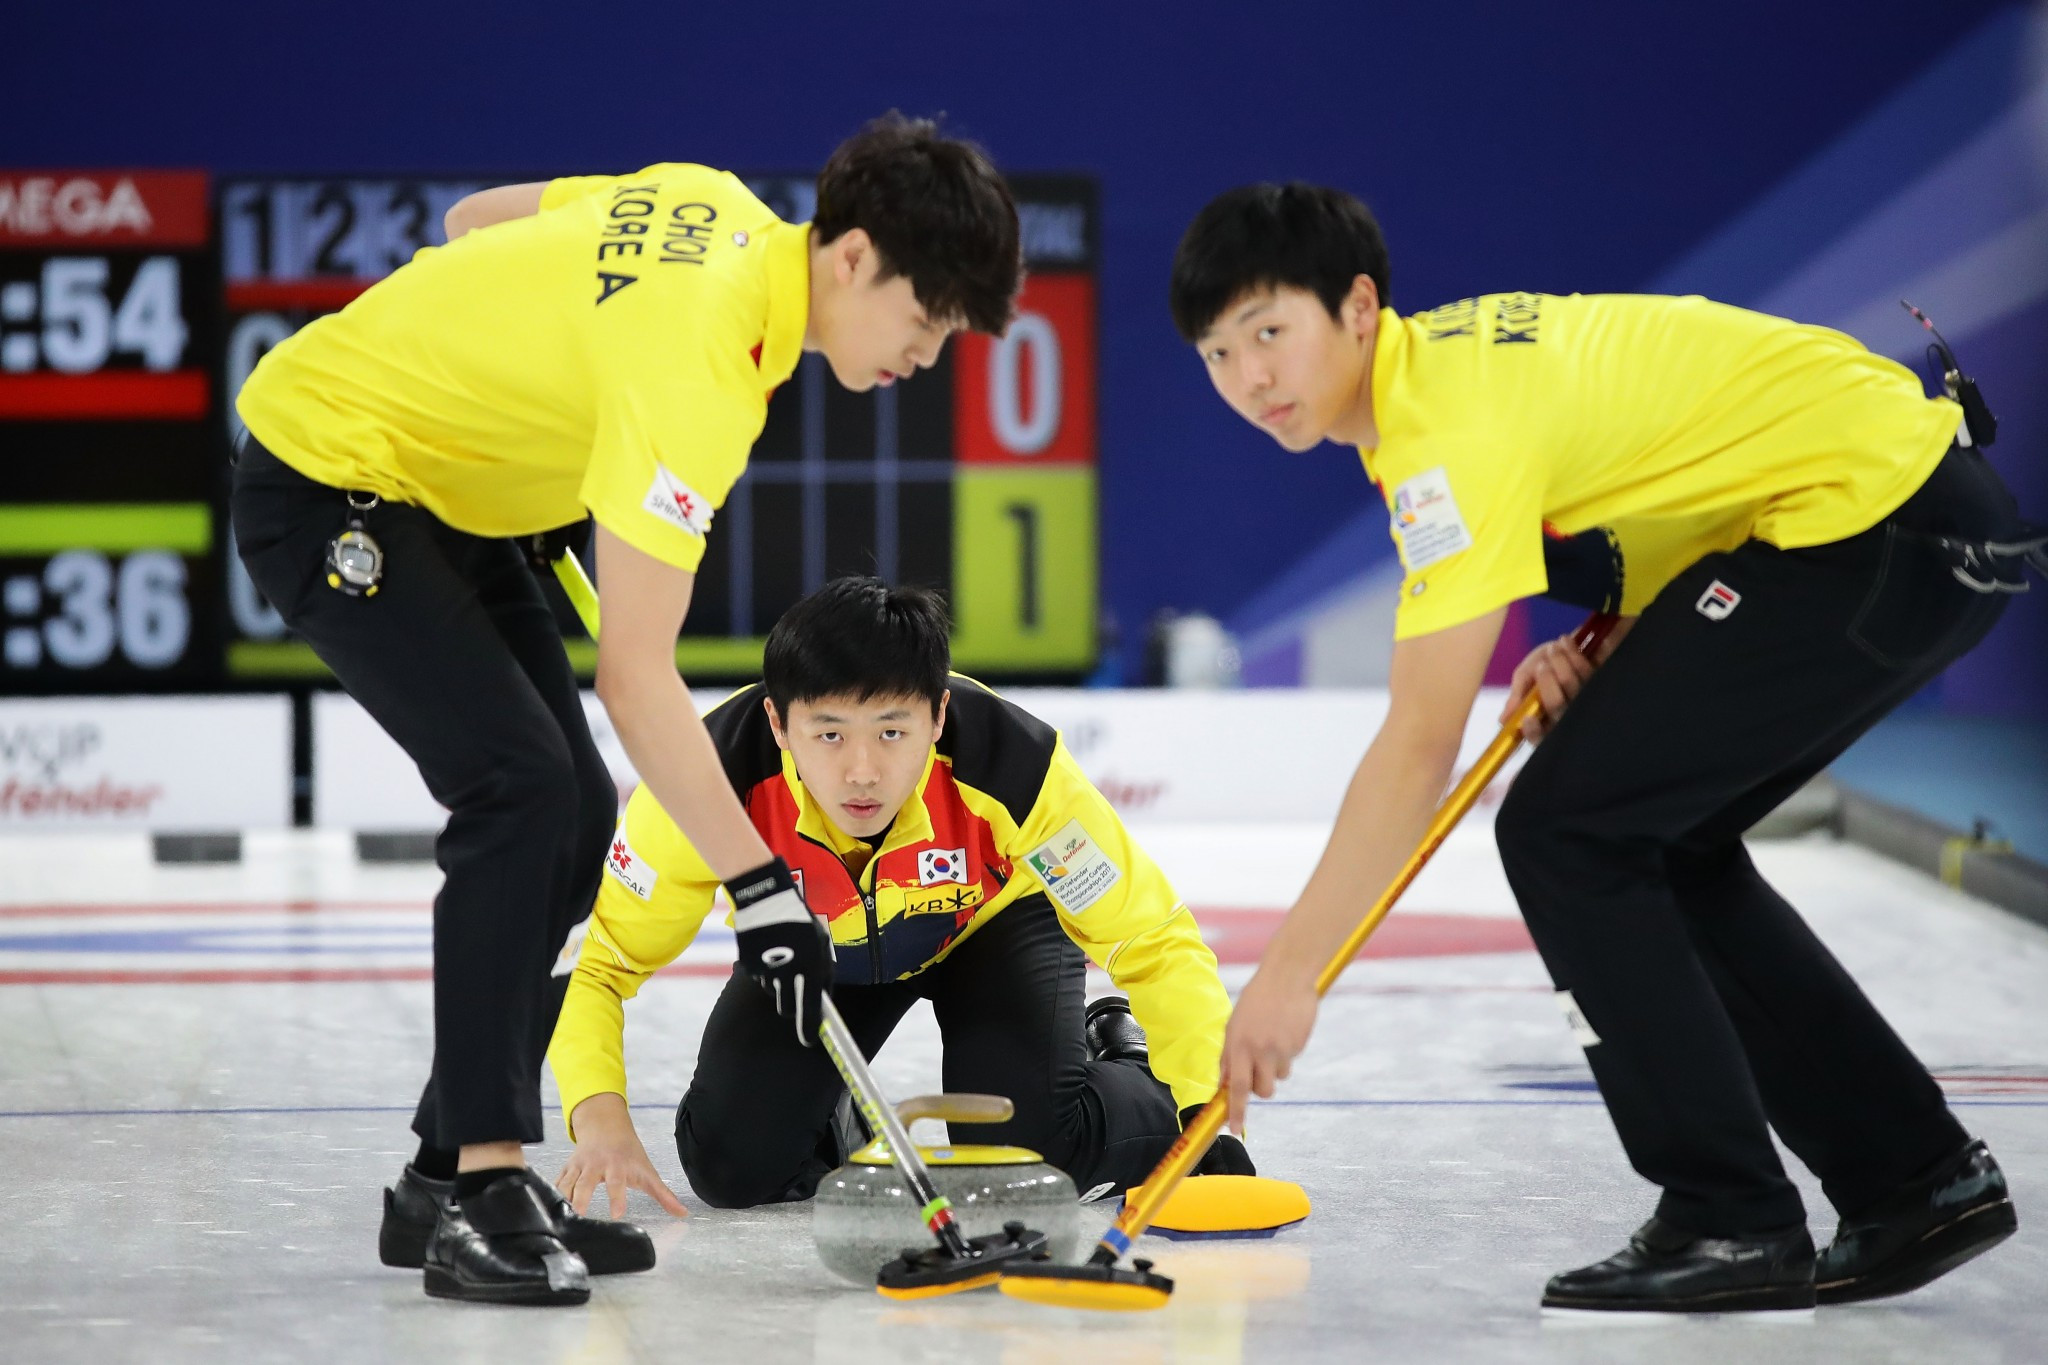 South Korean curlers' preparations for the 2018 Winter Olympic Games in Pyeongchang have been dealt another blow ©Getty Images